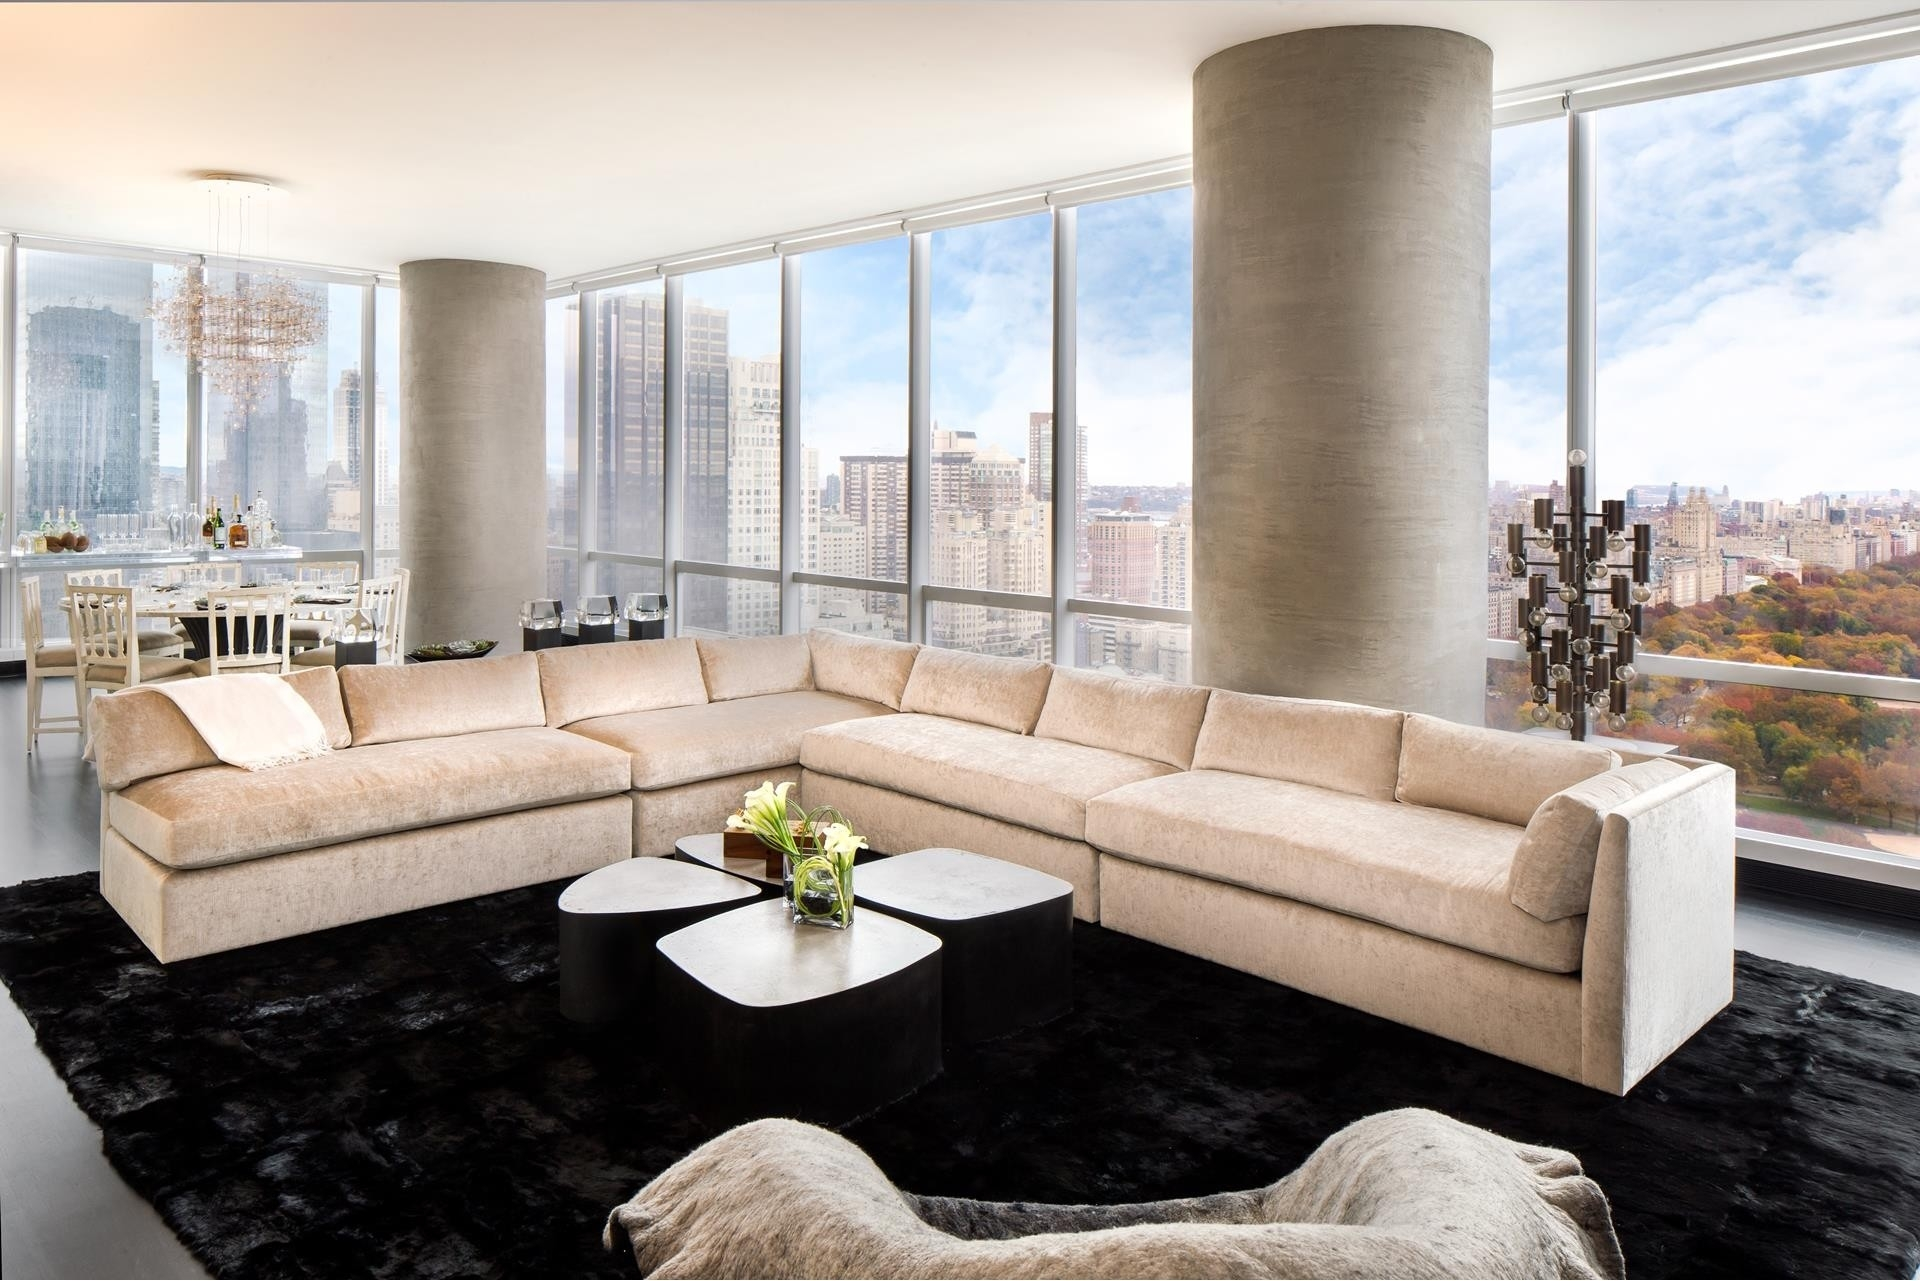 1. Condominiums for Sale at One57, 157 W 57TH ST , 41A Midtown West, New York, NY 10019